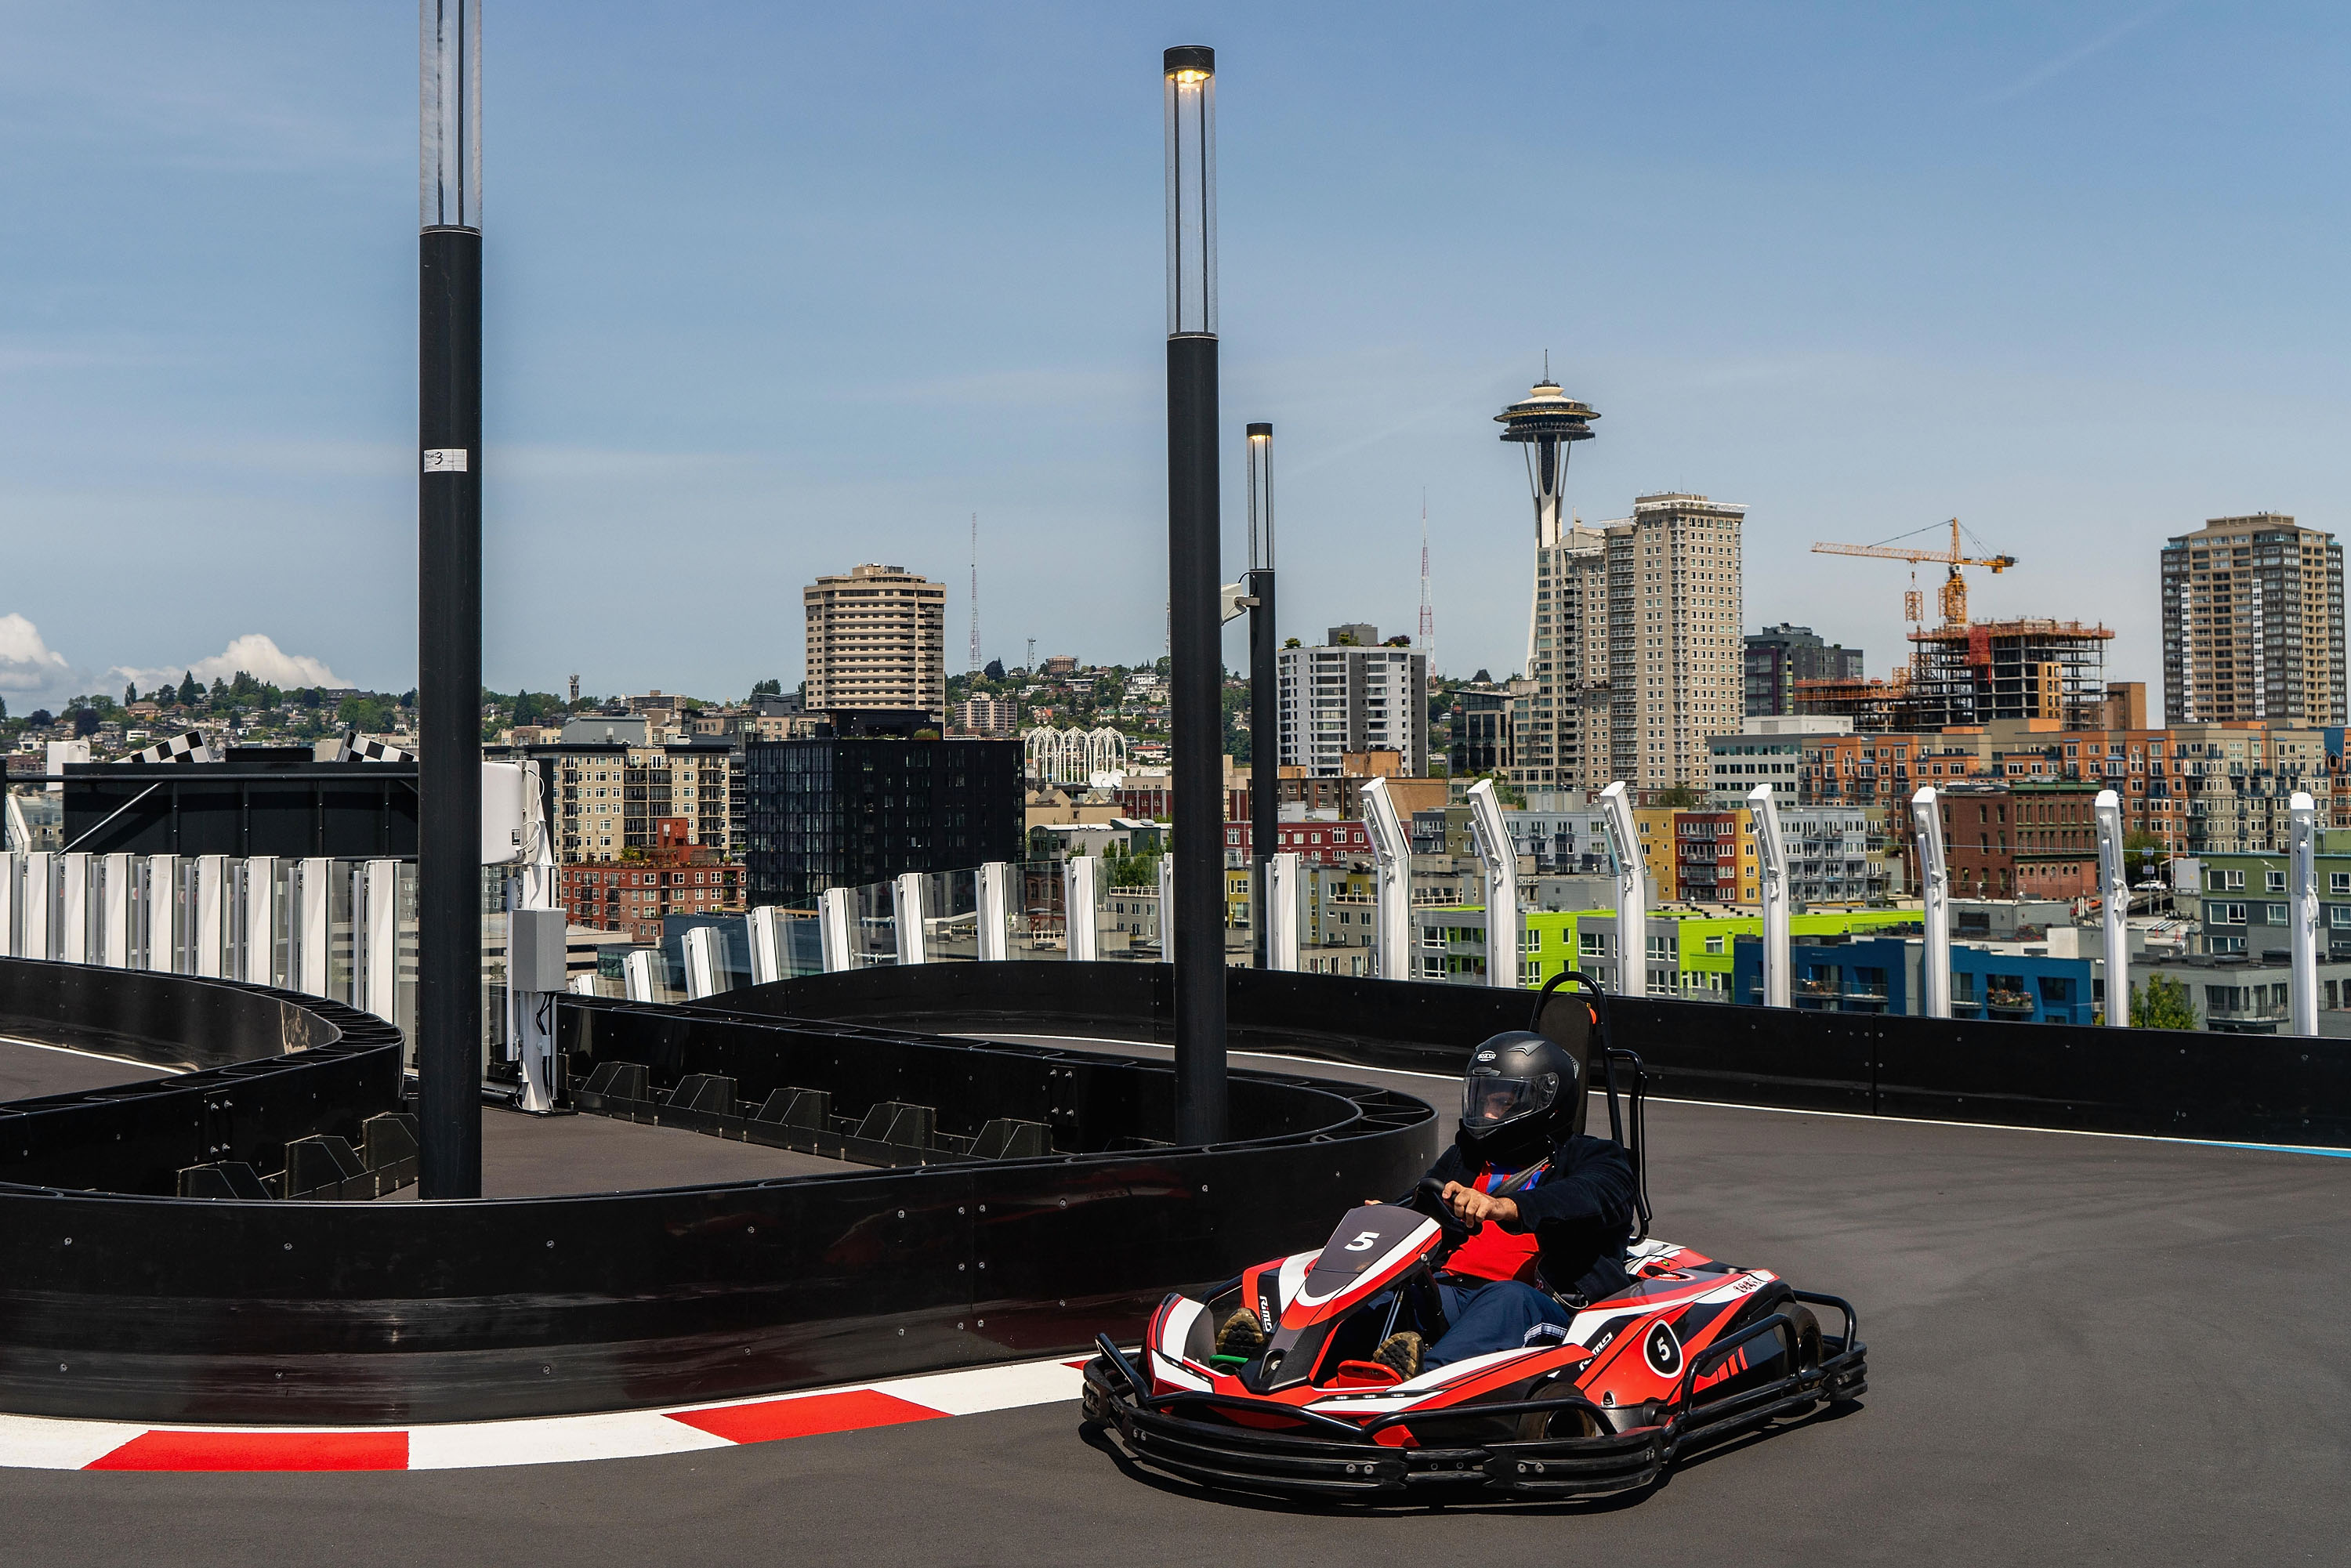 Slide 40 of 77: SEATTLE, WA - MAY 30: Guests race the two-level race track on board Norwegian Bliss with views of the Seattle skyline at Pier 66 on May 30, 2018 in Seattle, Washington.  (Photo by Suzi Pratt/Getty Images for Norwegian Cruise Line)